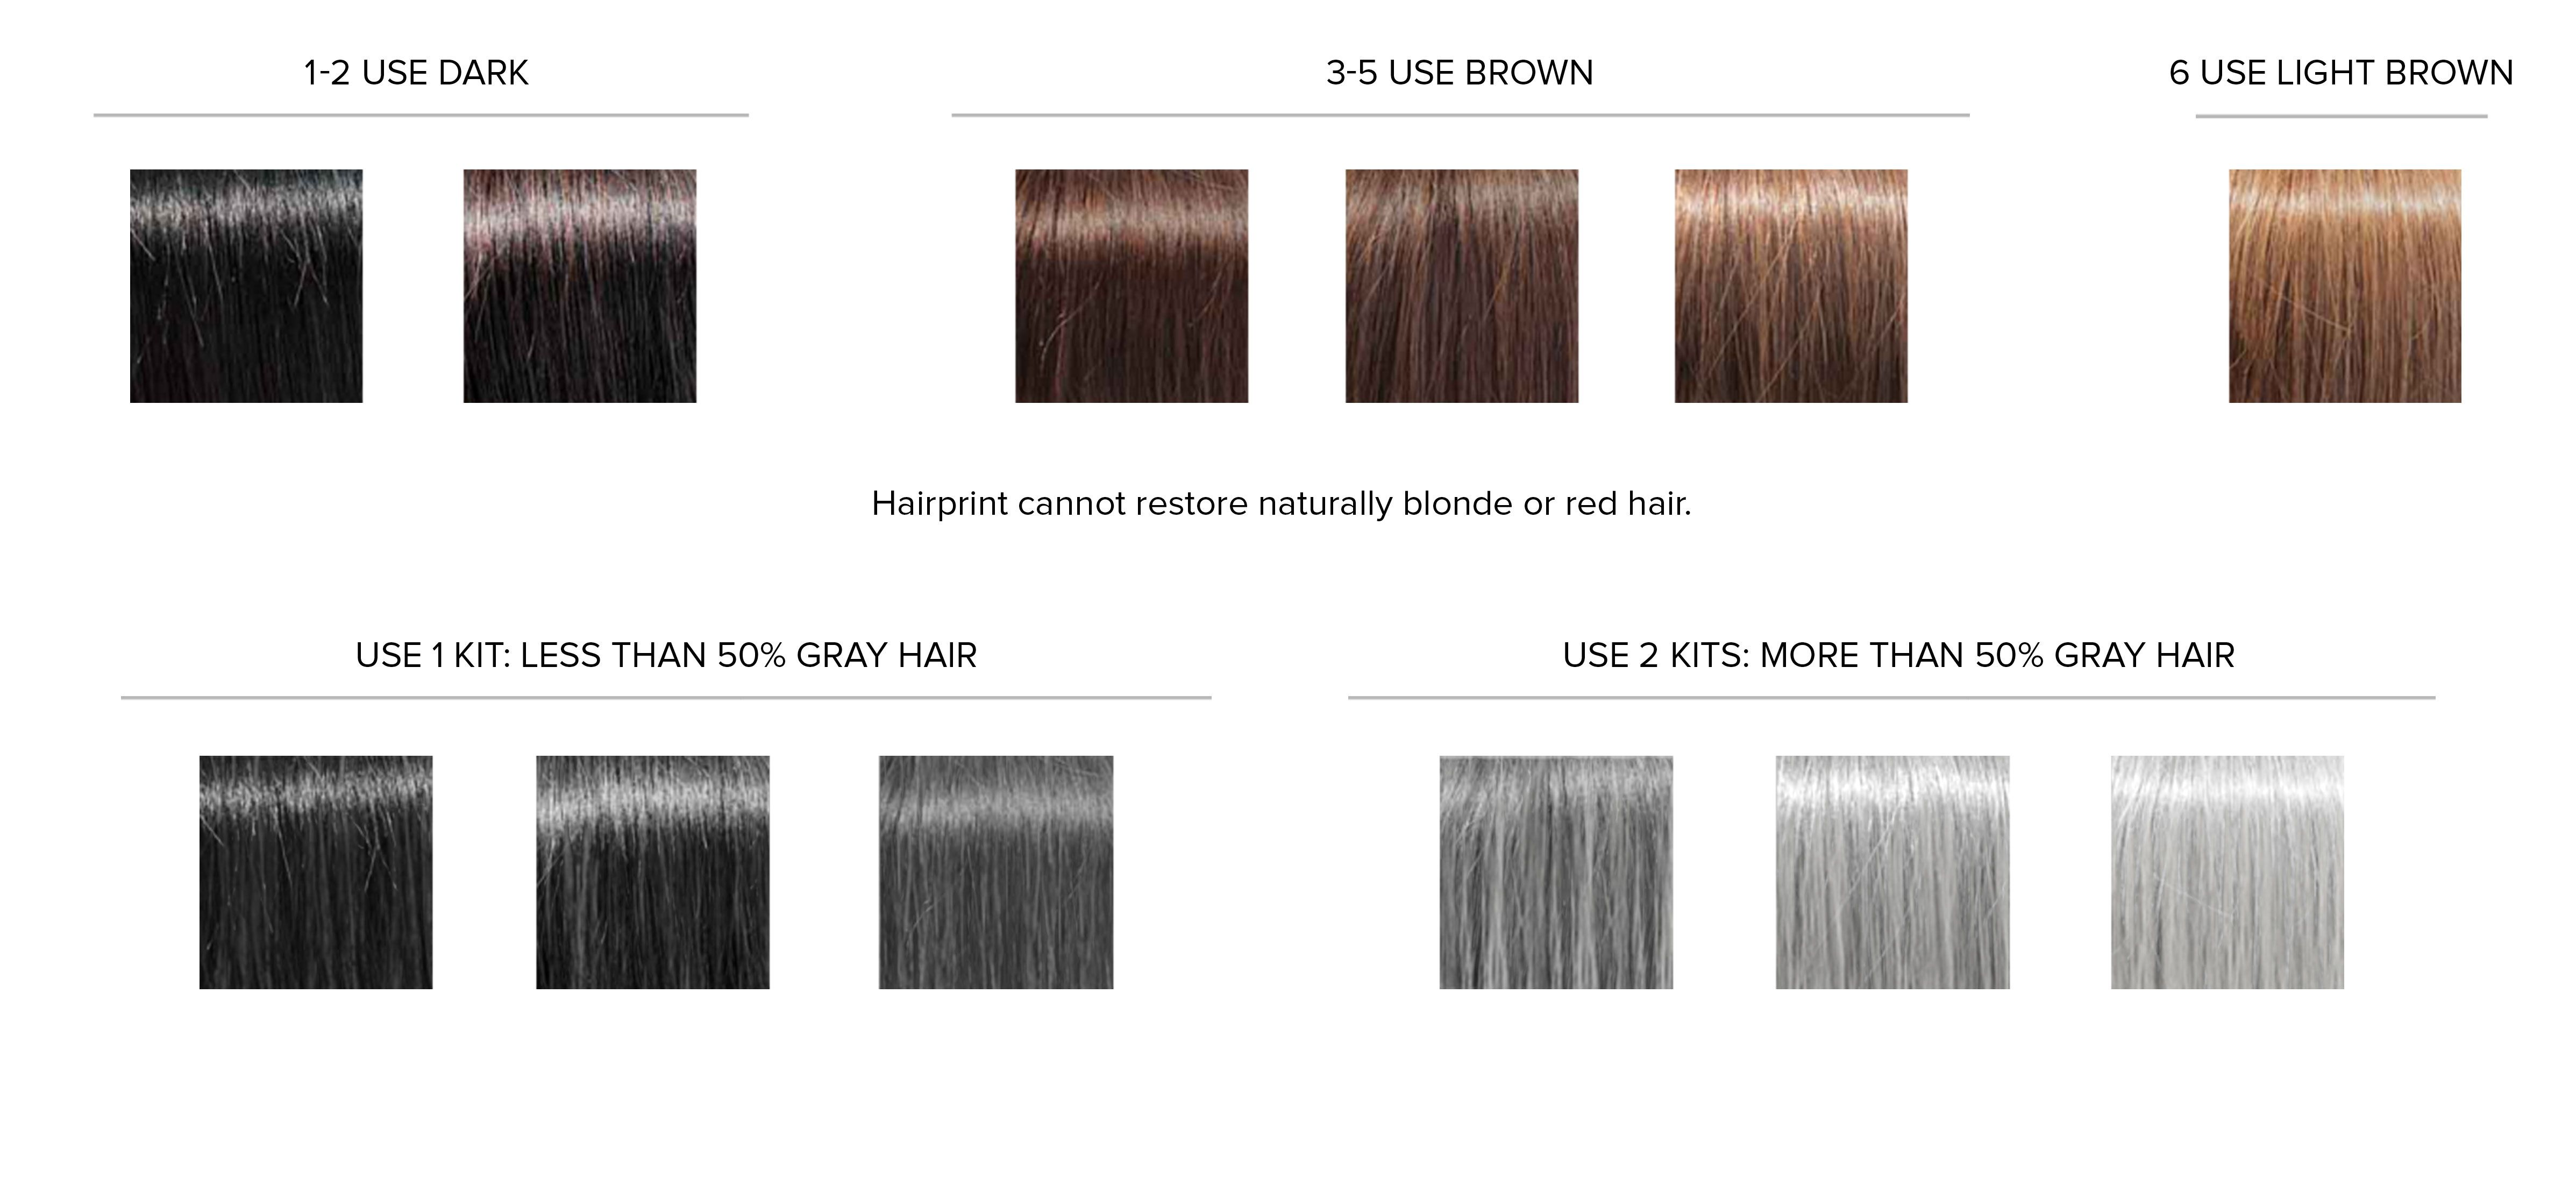 Hairprint Is A Brilliant Scientific Breakthrough That Restores Gray Hair To Its True Color It Replenishes The Nat Restore Gray Hair Grey Hair Color Hair Color